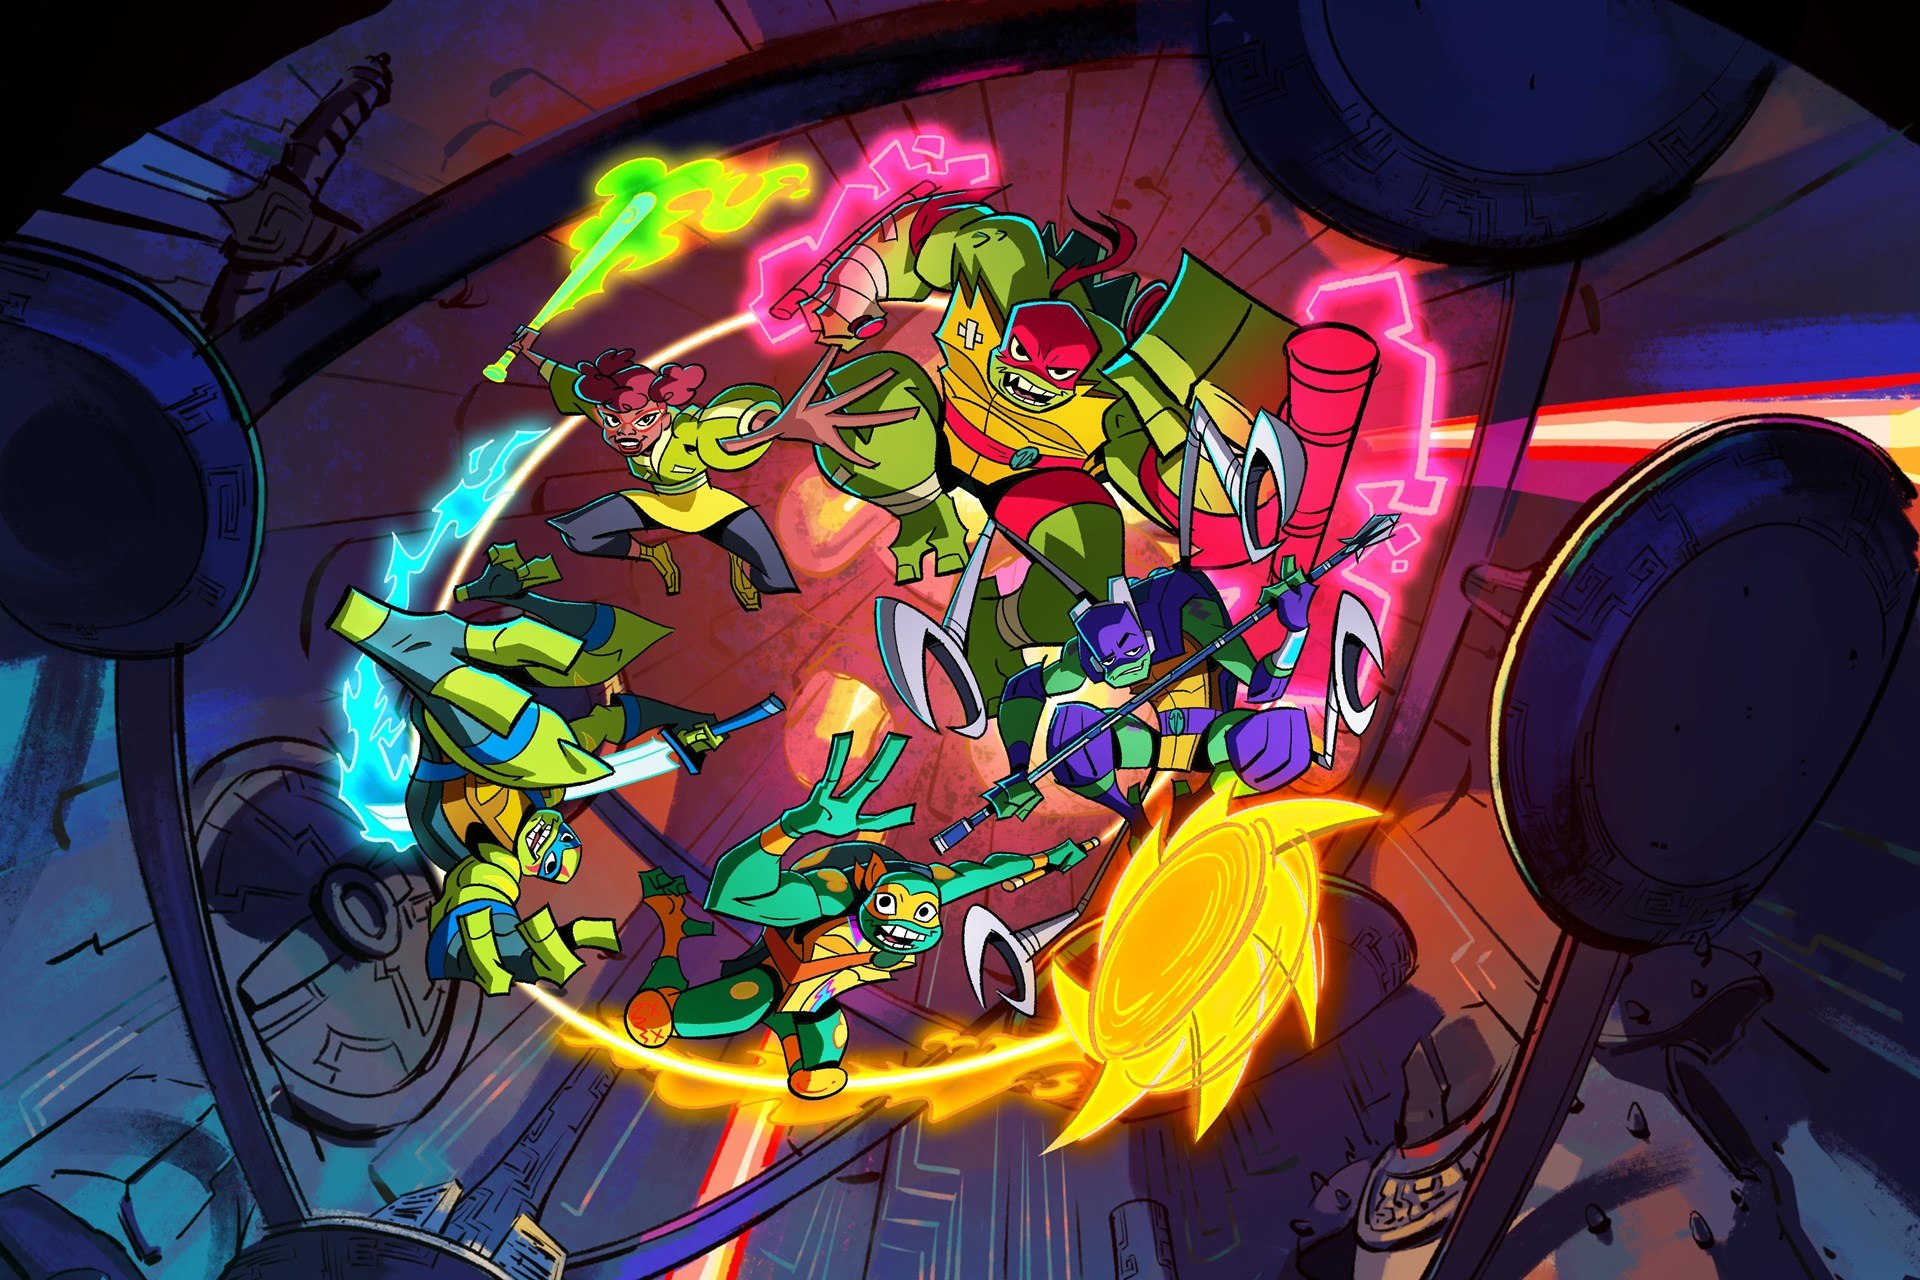 Nickelodeon Brings 'Rise Of The Teenage Mutant Ninja Turtles